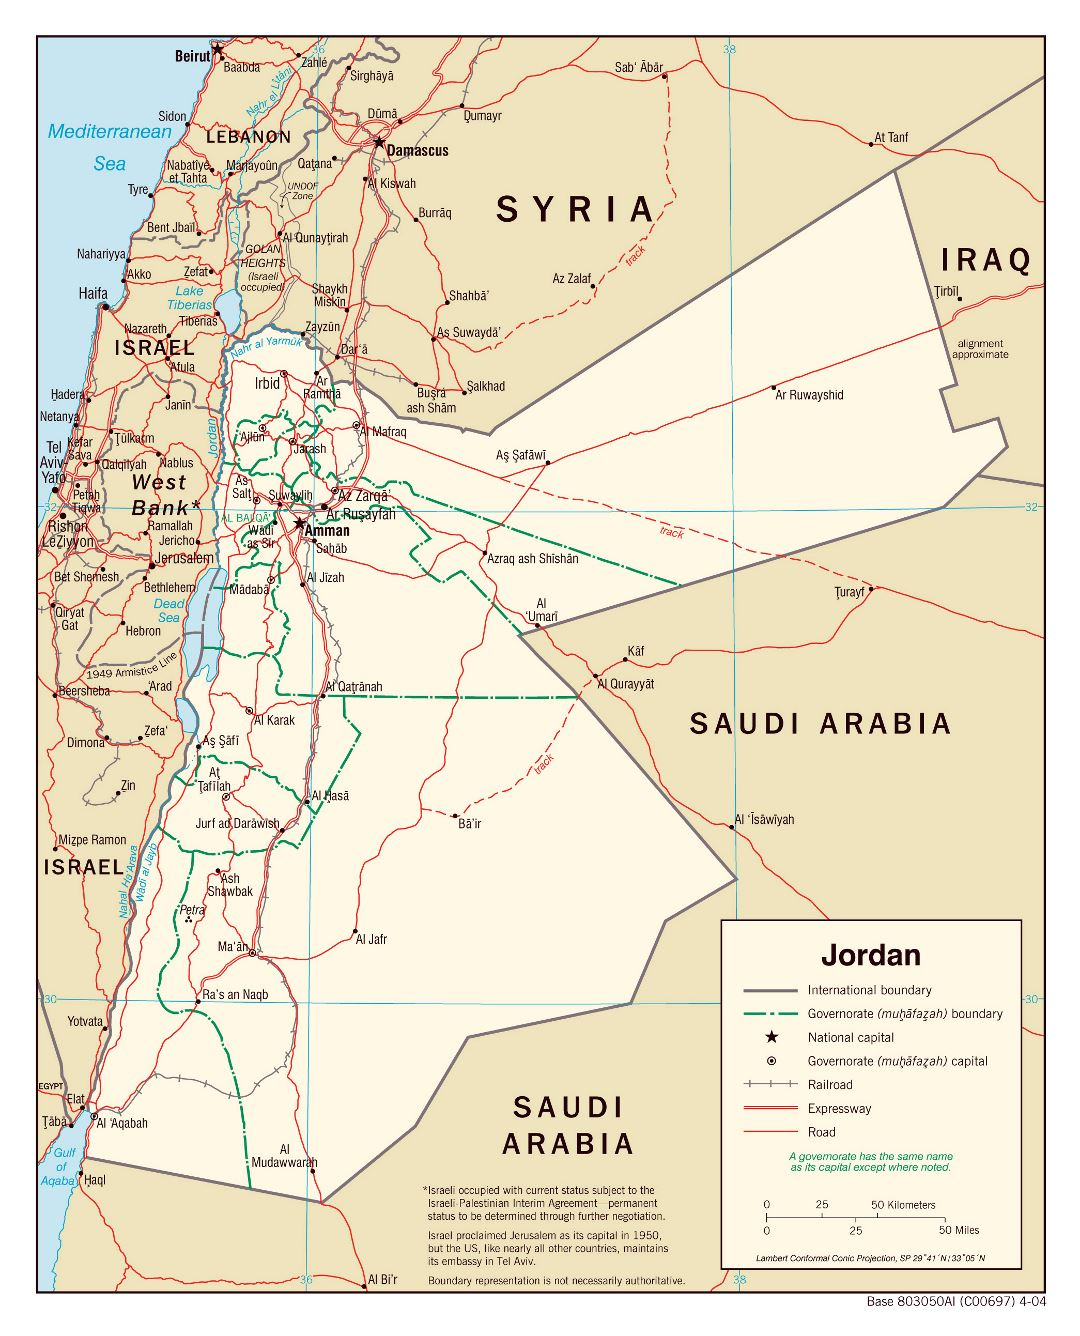 Large political and administrative map of Jordan with roads, railroads and major cities - 2004